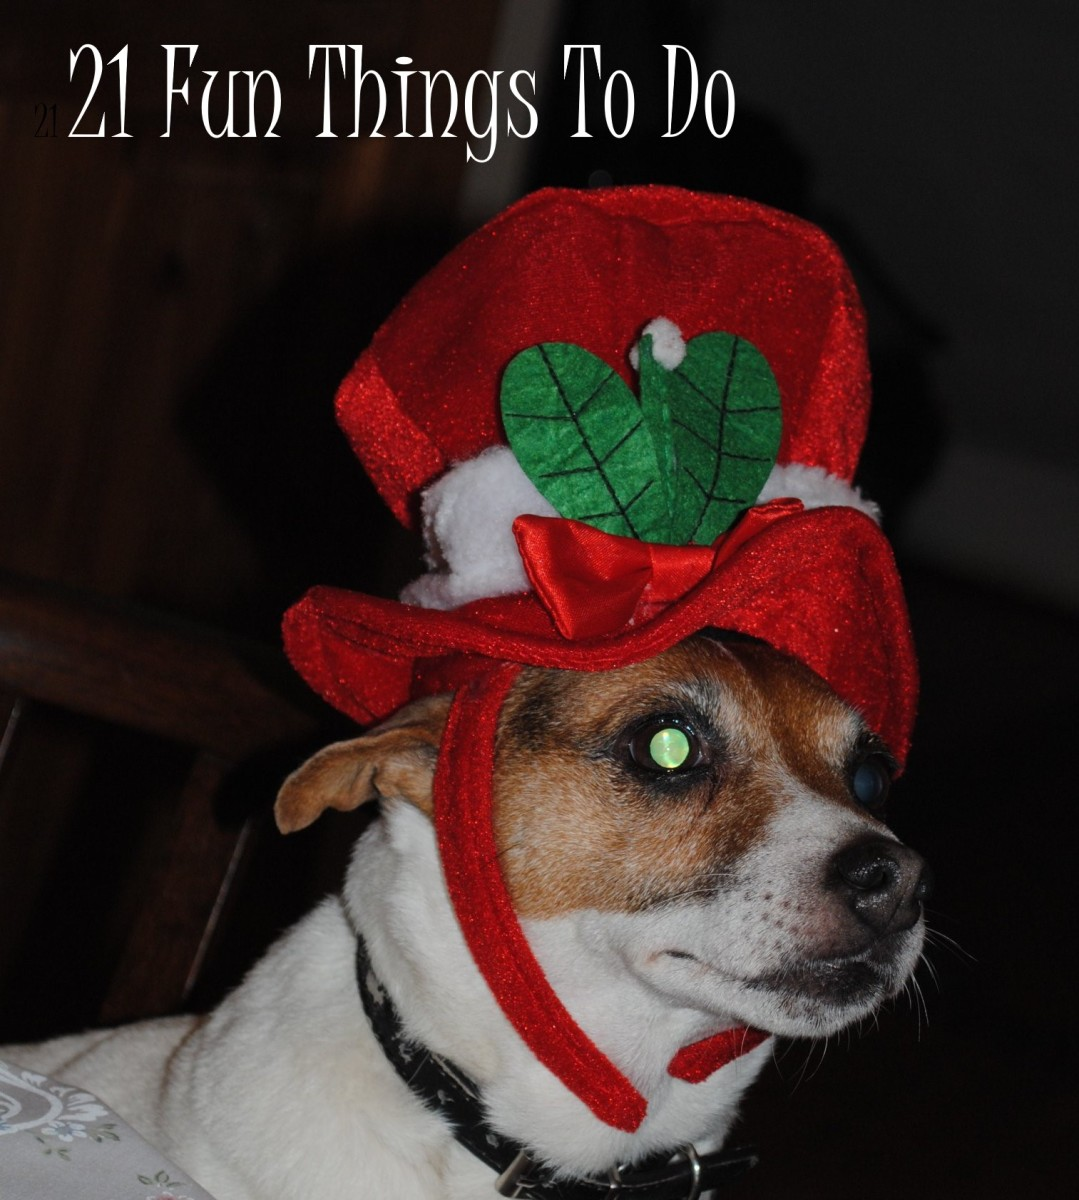 21 Fun Things To Do on a Budget